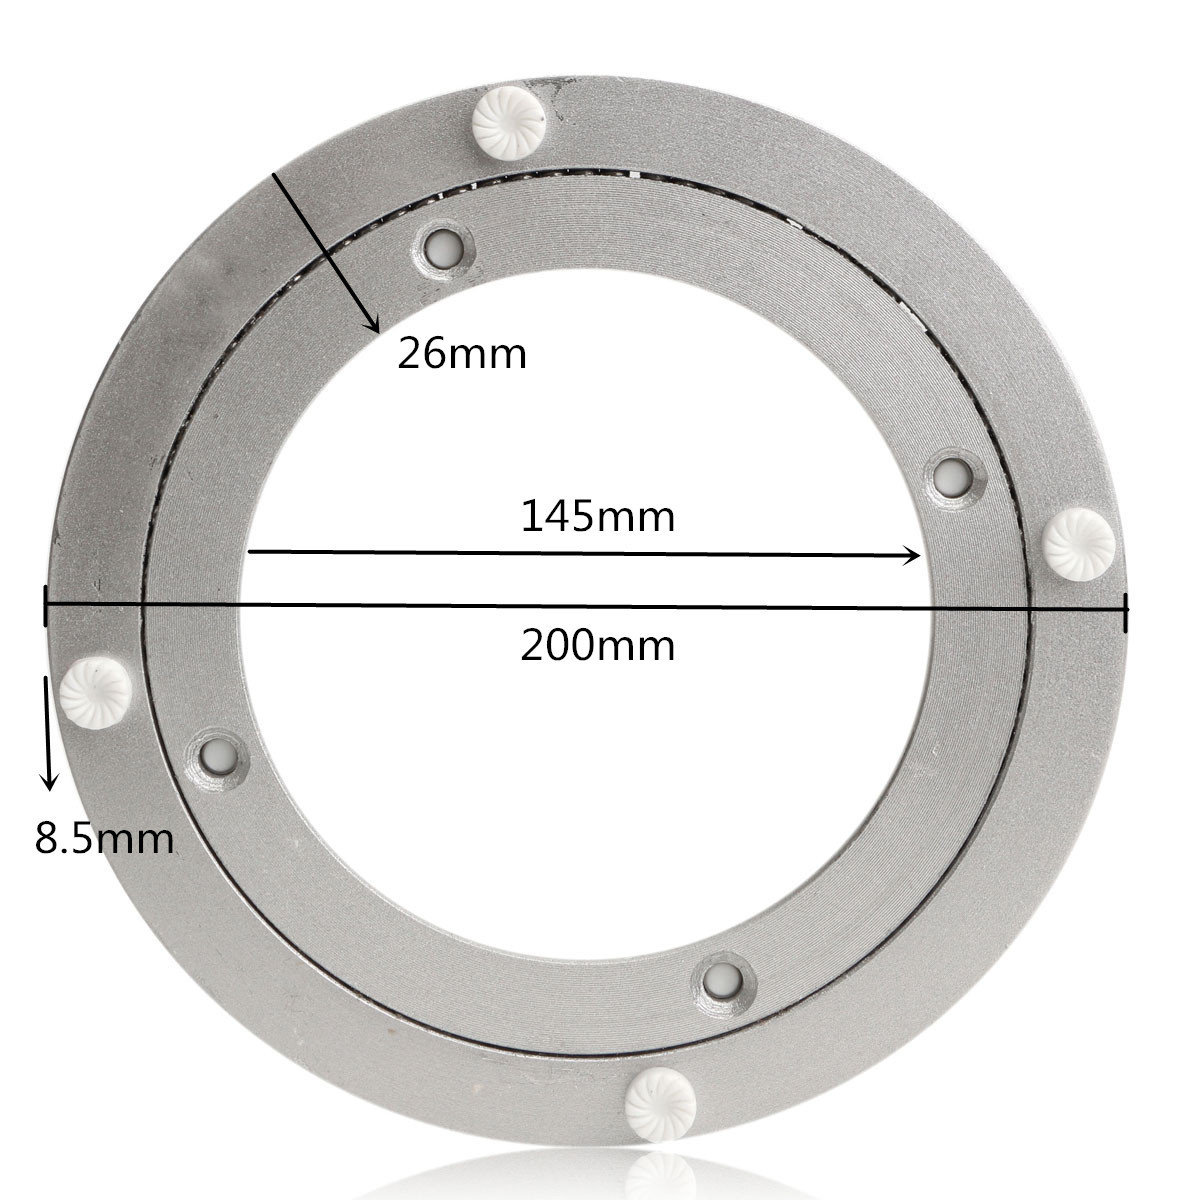 20/14cm Heavy Aluminium Rotating Bearing Turntable Turn Table Round Swivel Plate For Cake Decorations Catering Services